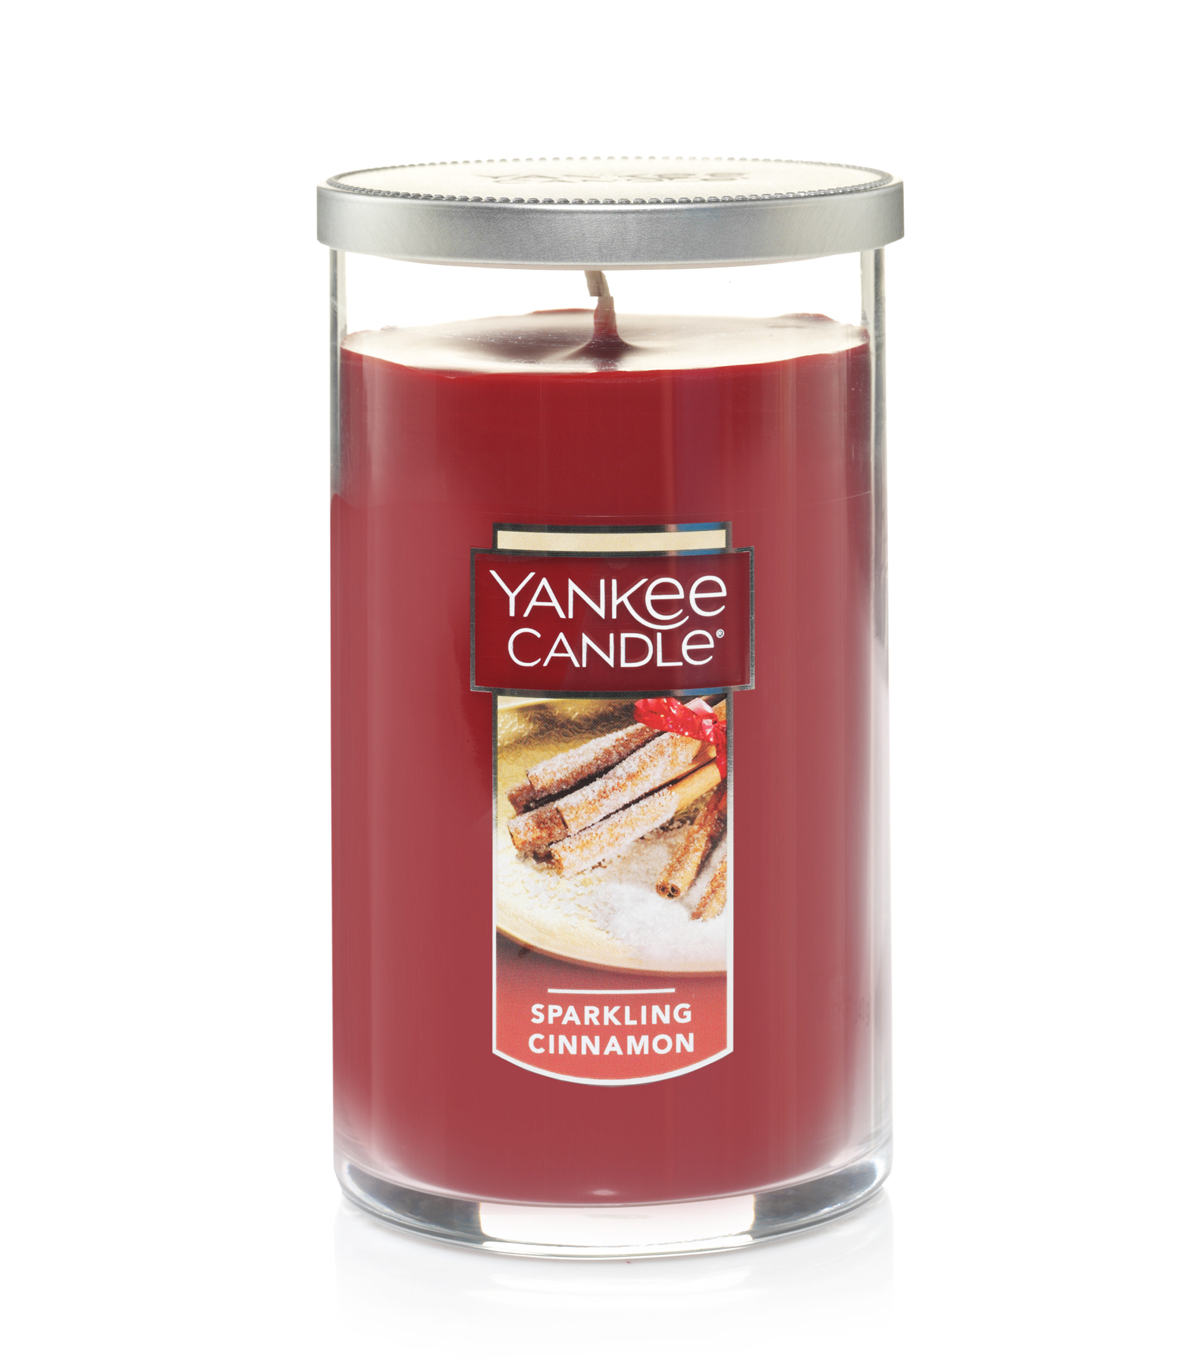 Yankee Candle Medium Perfect Sparkling Cinnamon Scented Pillar Candle